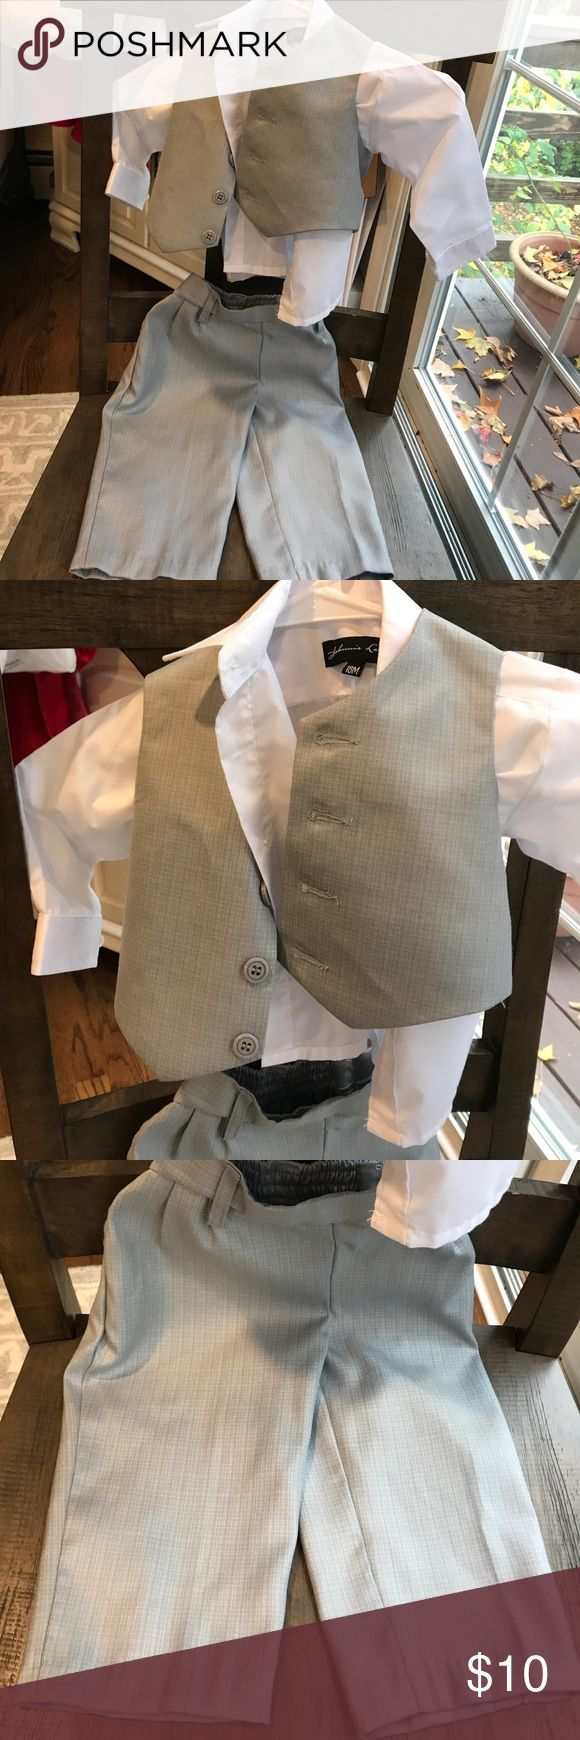 Boys infant gray suit 3 piece infant gray suit. Only worn once  Please look over all pictures before purchasing. Matching Sets